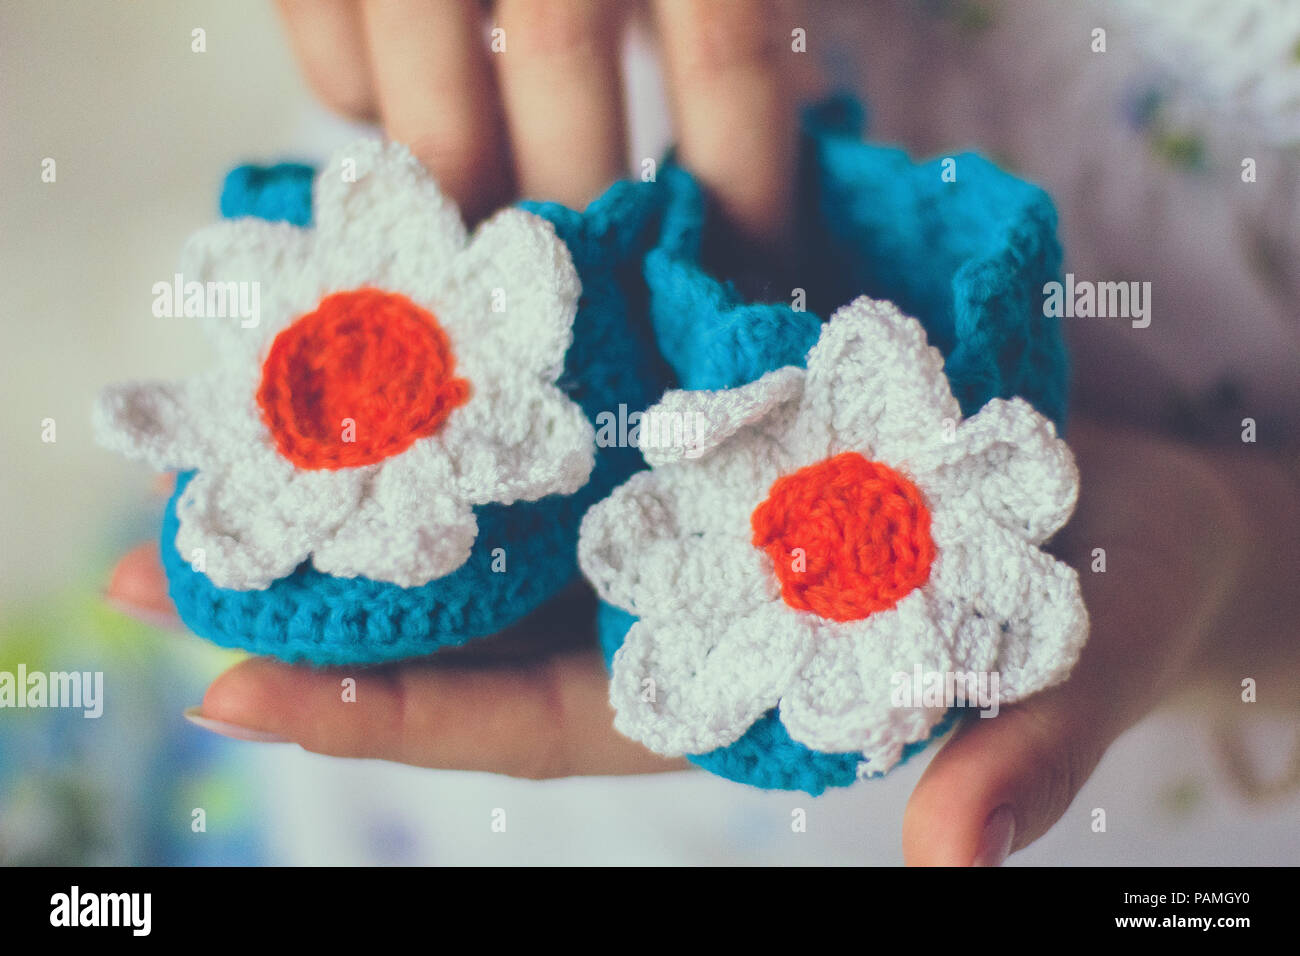 Baby knitted slippers in hands - Stock Image